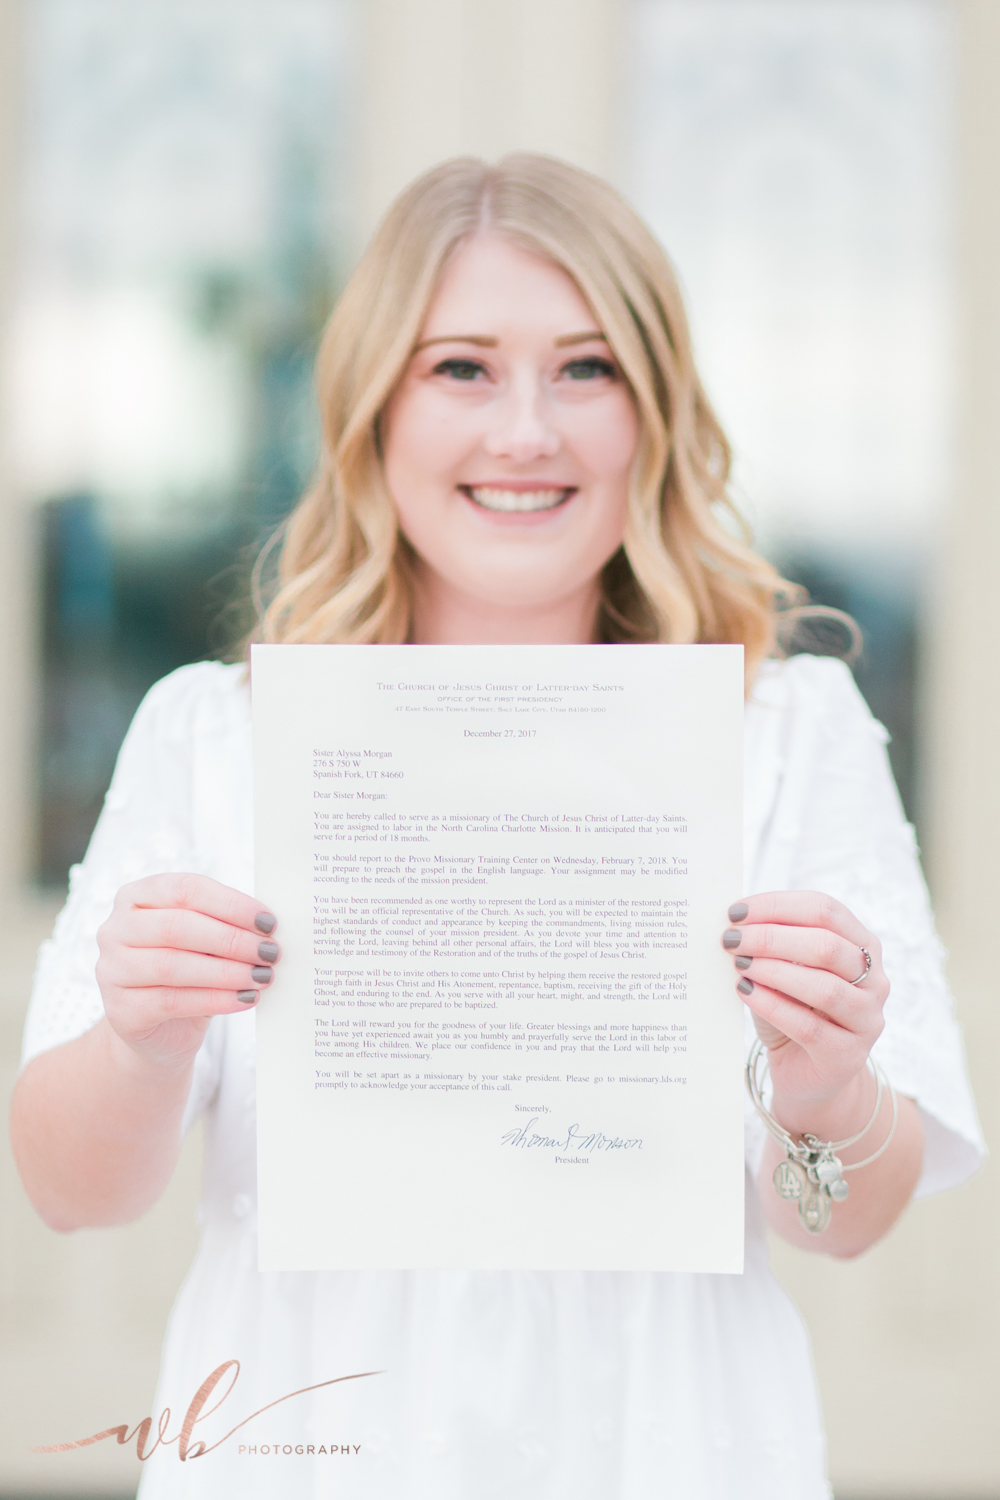 LDS mission call photos